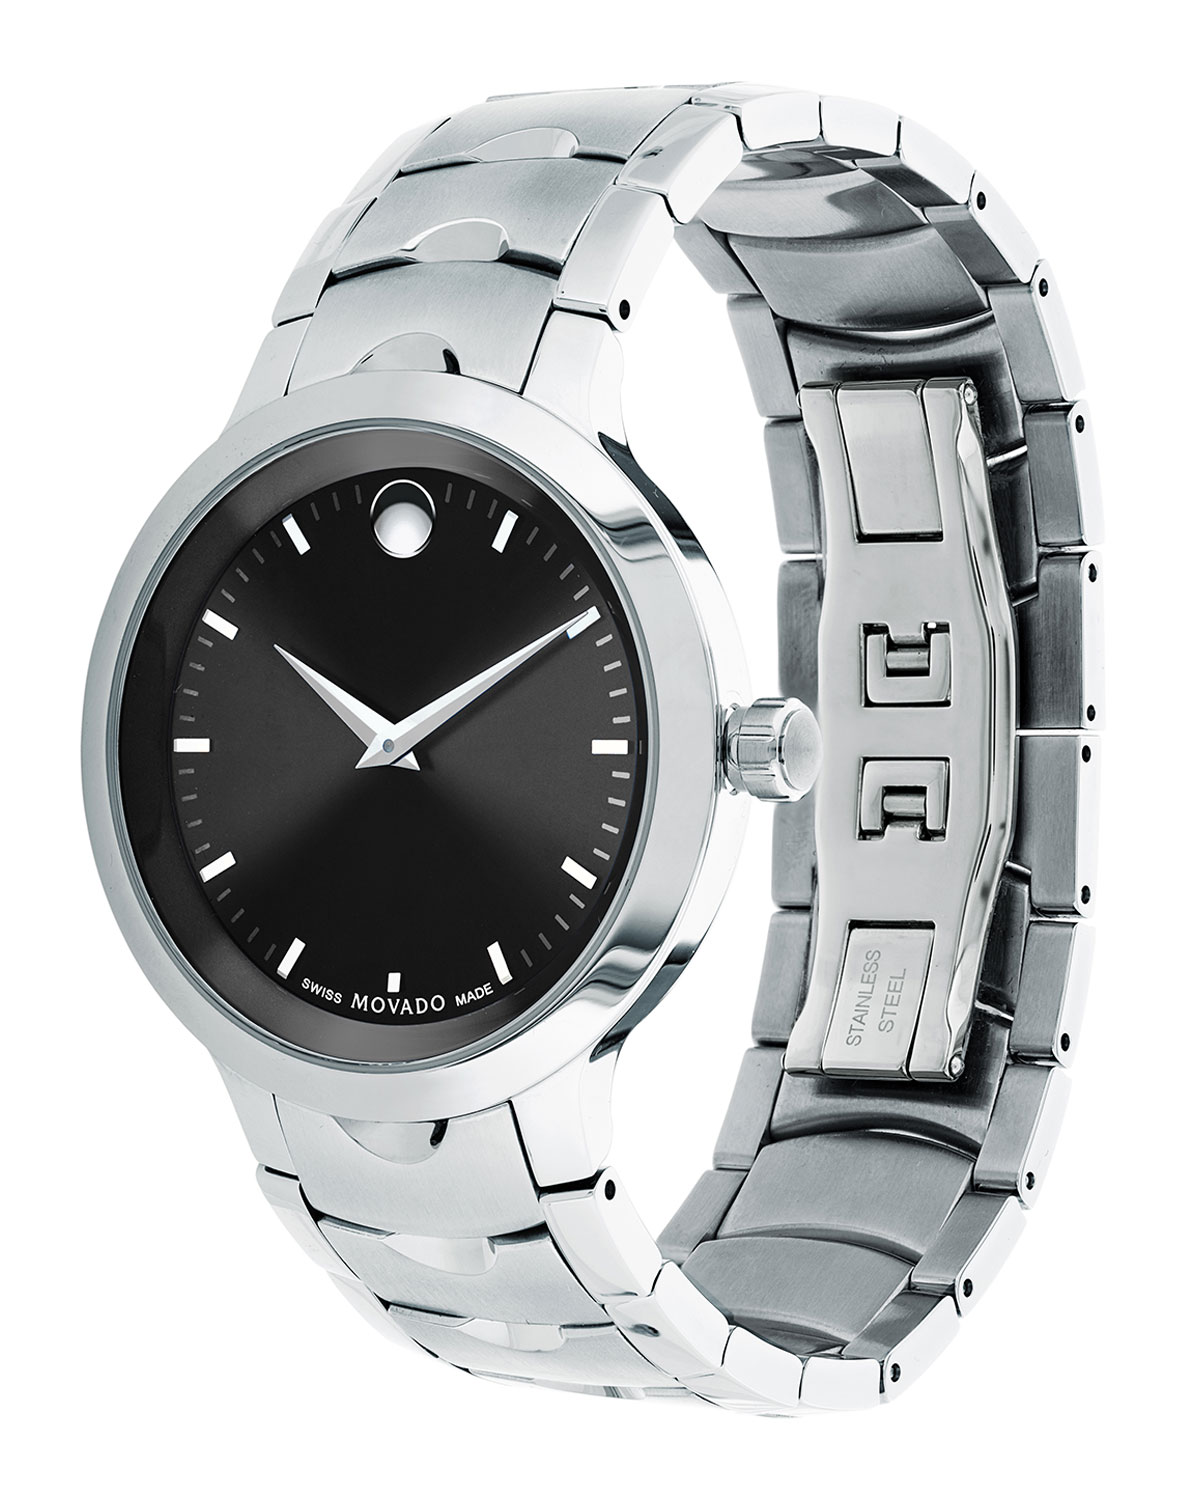 watch steel watches luno movado dial i s quartz black silver authentic men